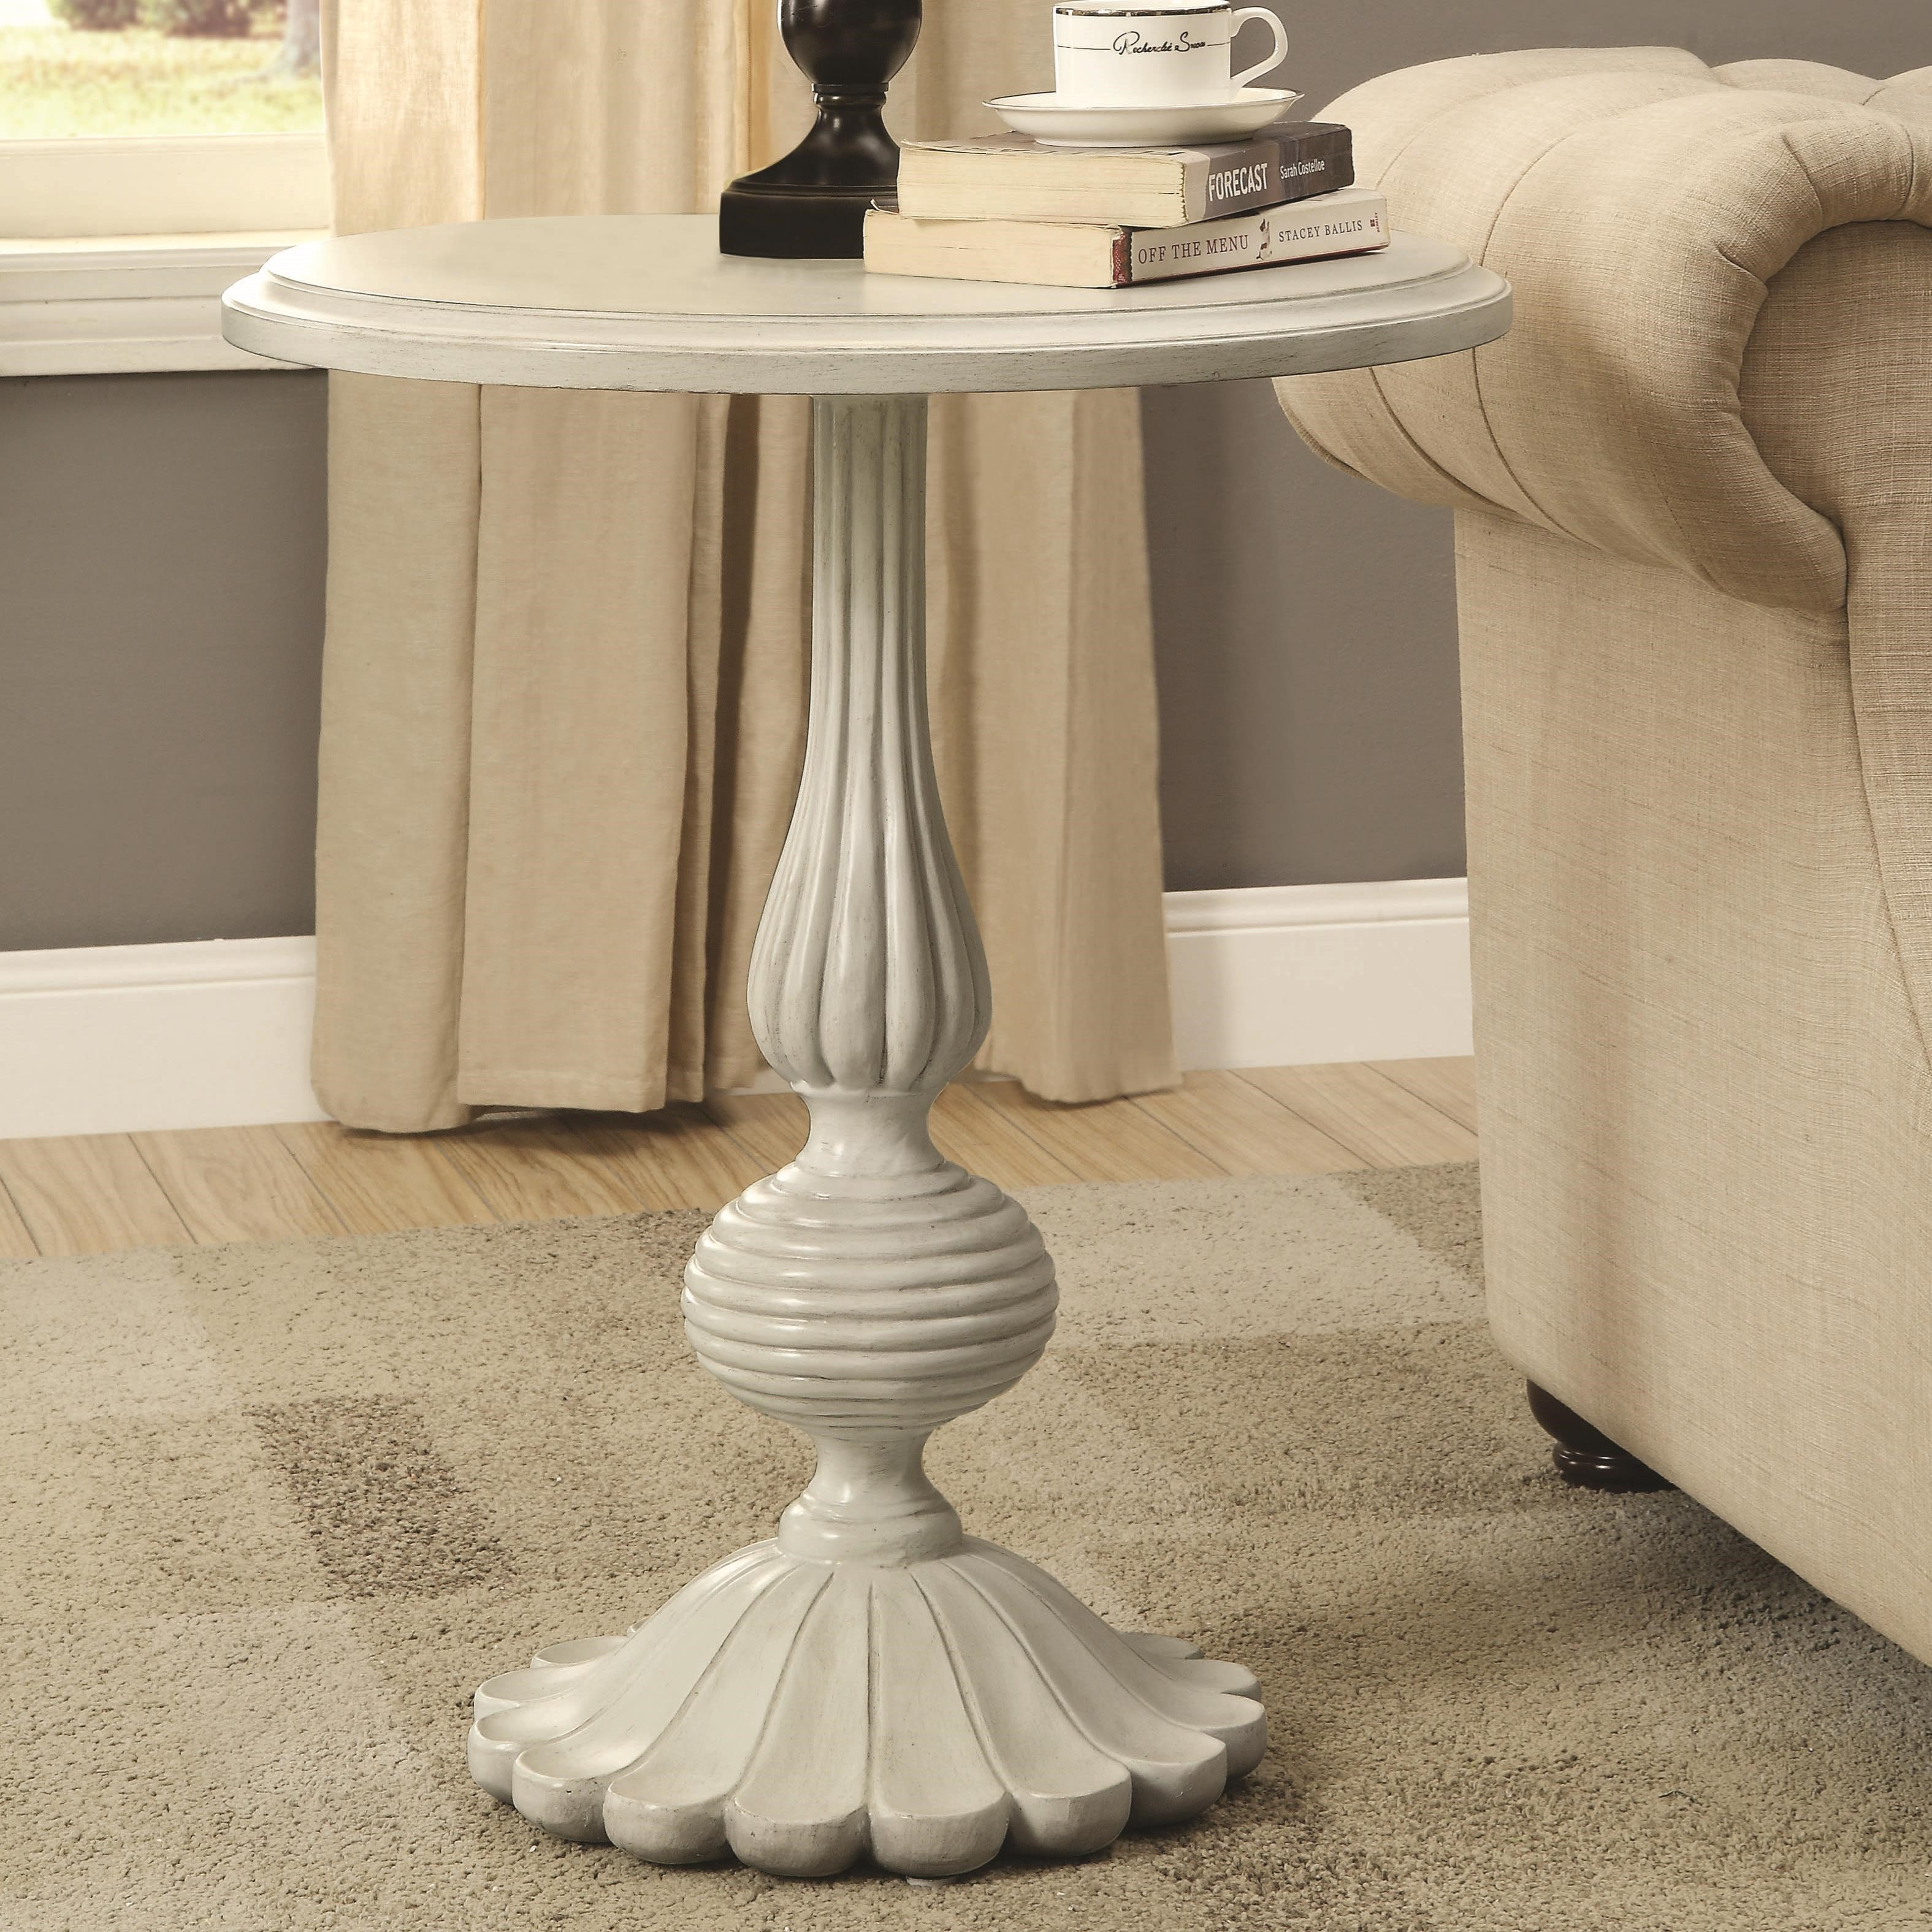 Coaster Accent Tables Accent Table - Item Number: 901504